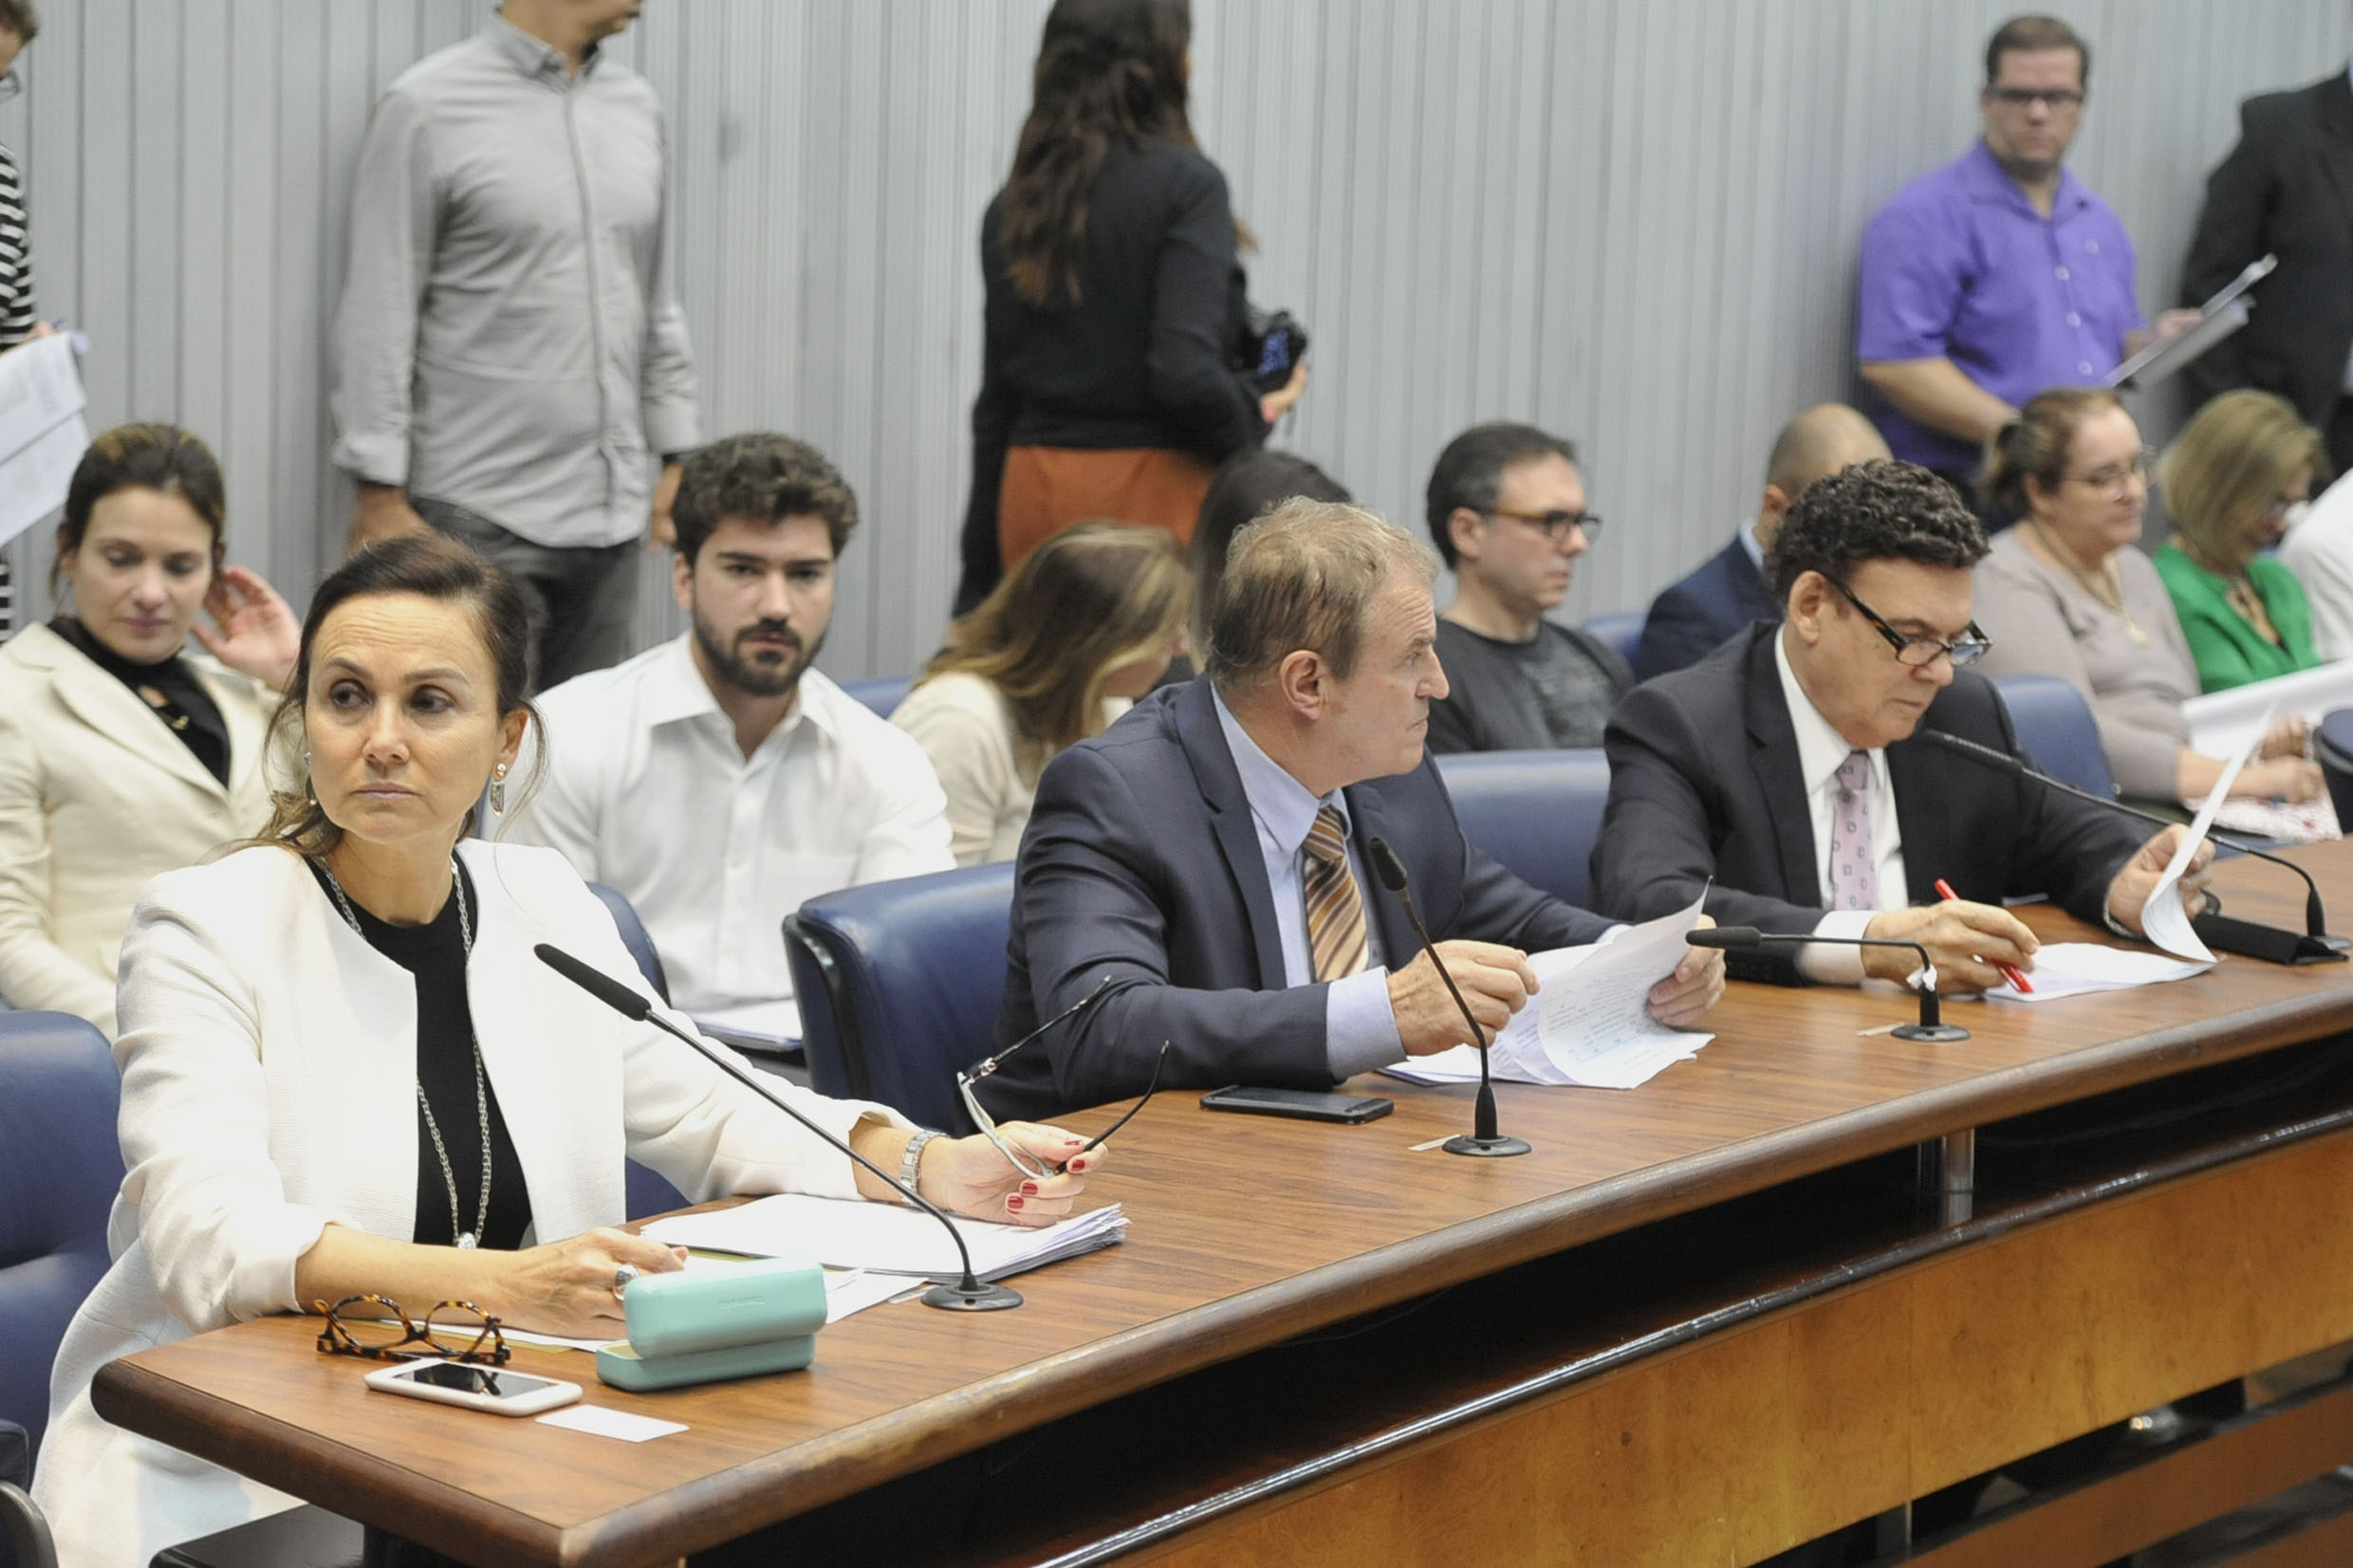 Parlamentares na comissão<a style='float:right' href='https://www3.al.sp.gov.br/repositorio/noticia/N-05-2019/fg234548.jpg' target=_blank><img src='/_img/material-file-download-white.png' width='14px' alt='Clique para baixar a imagem'></a>